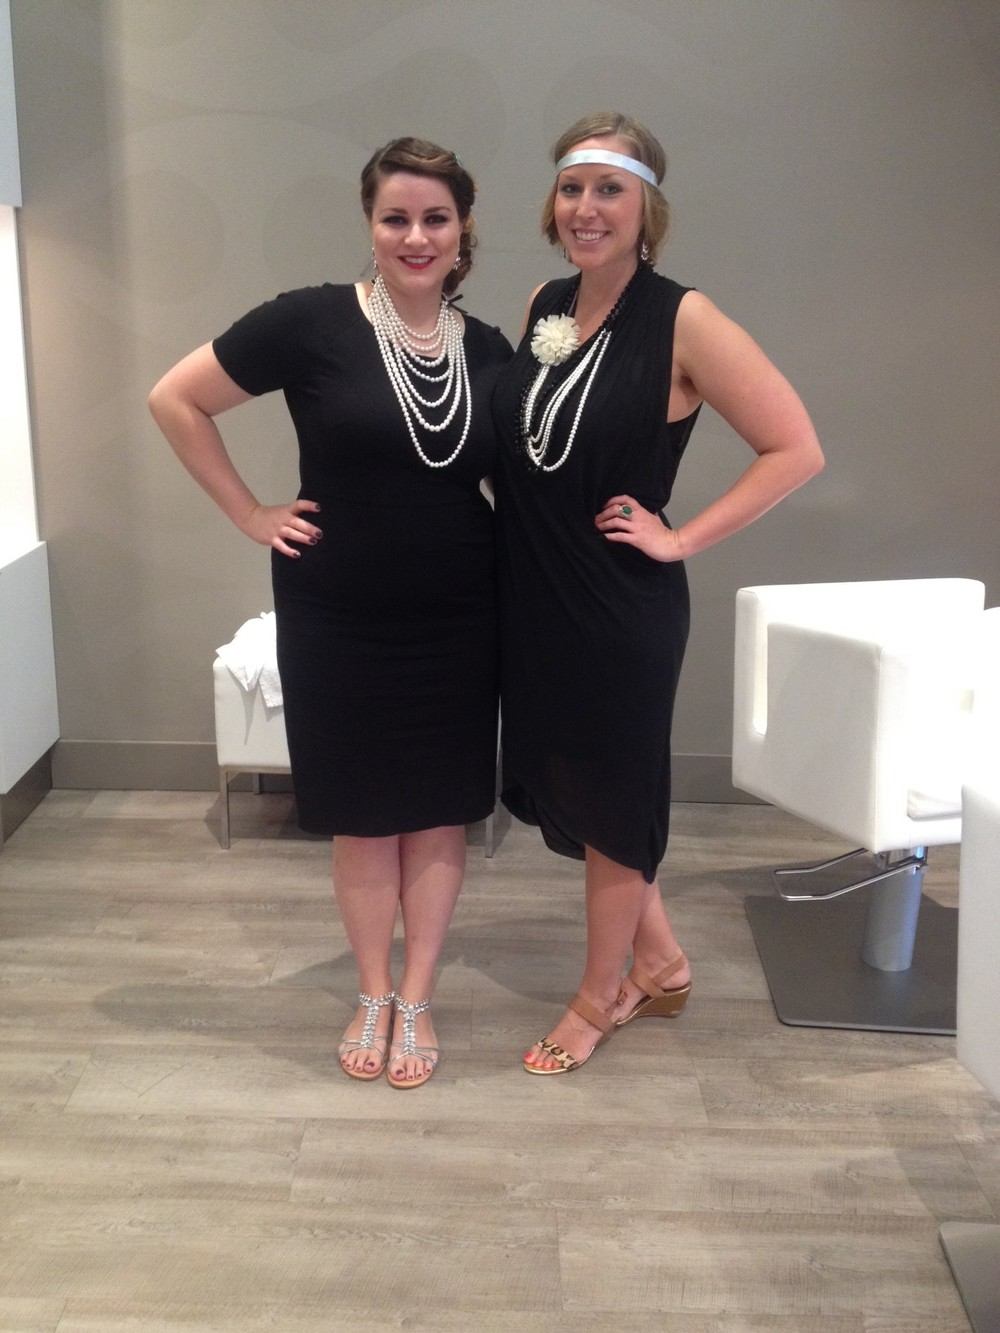 We got up early to get our HAIR DID at Blo Chelsea